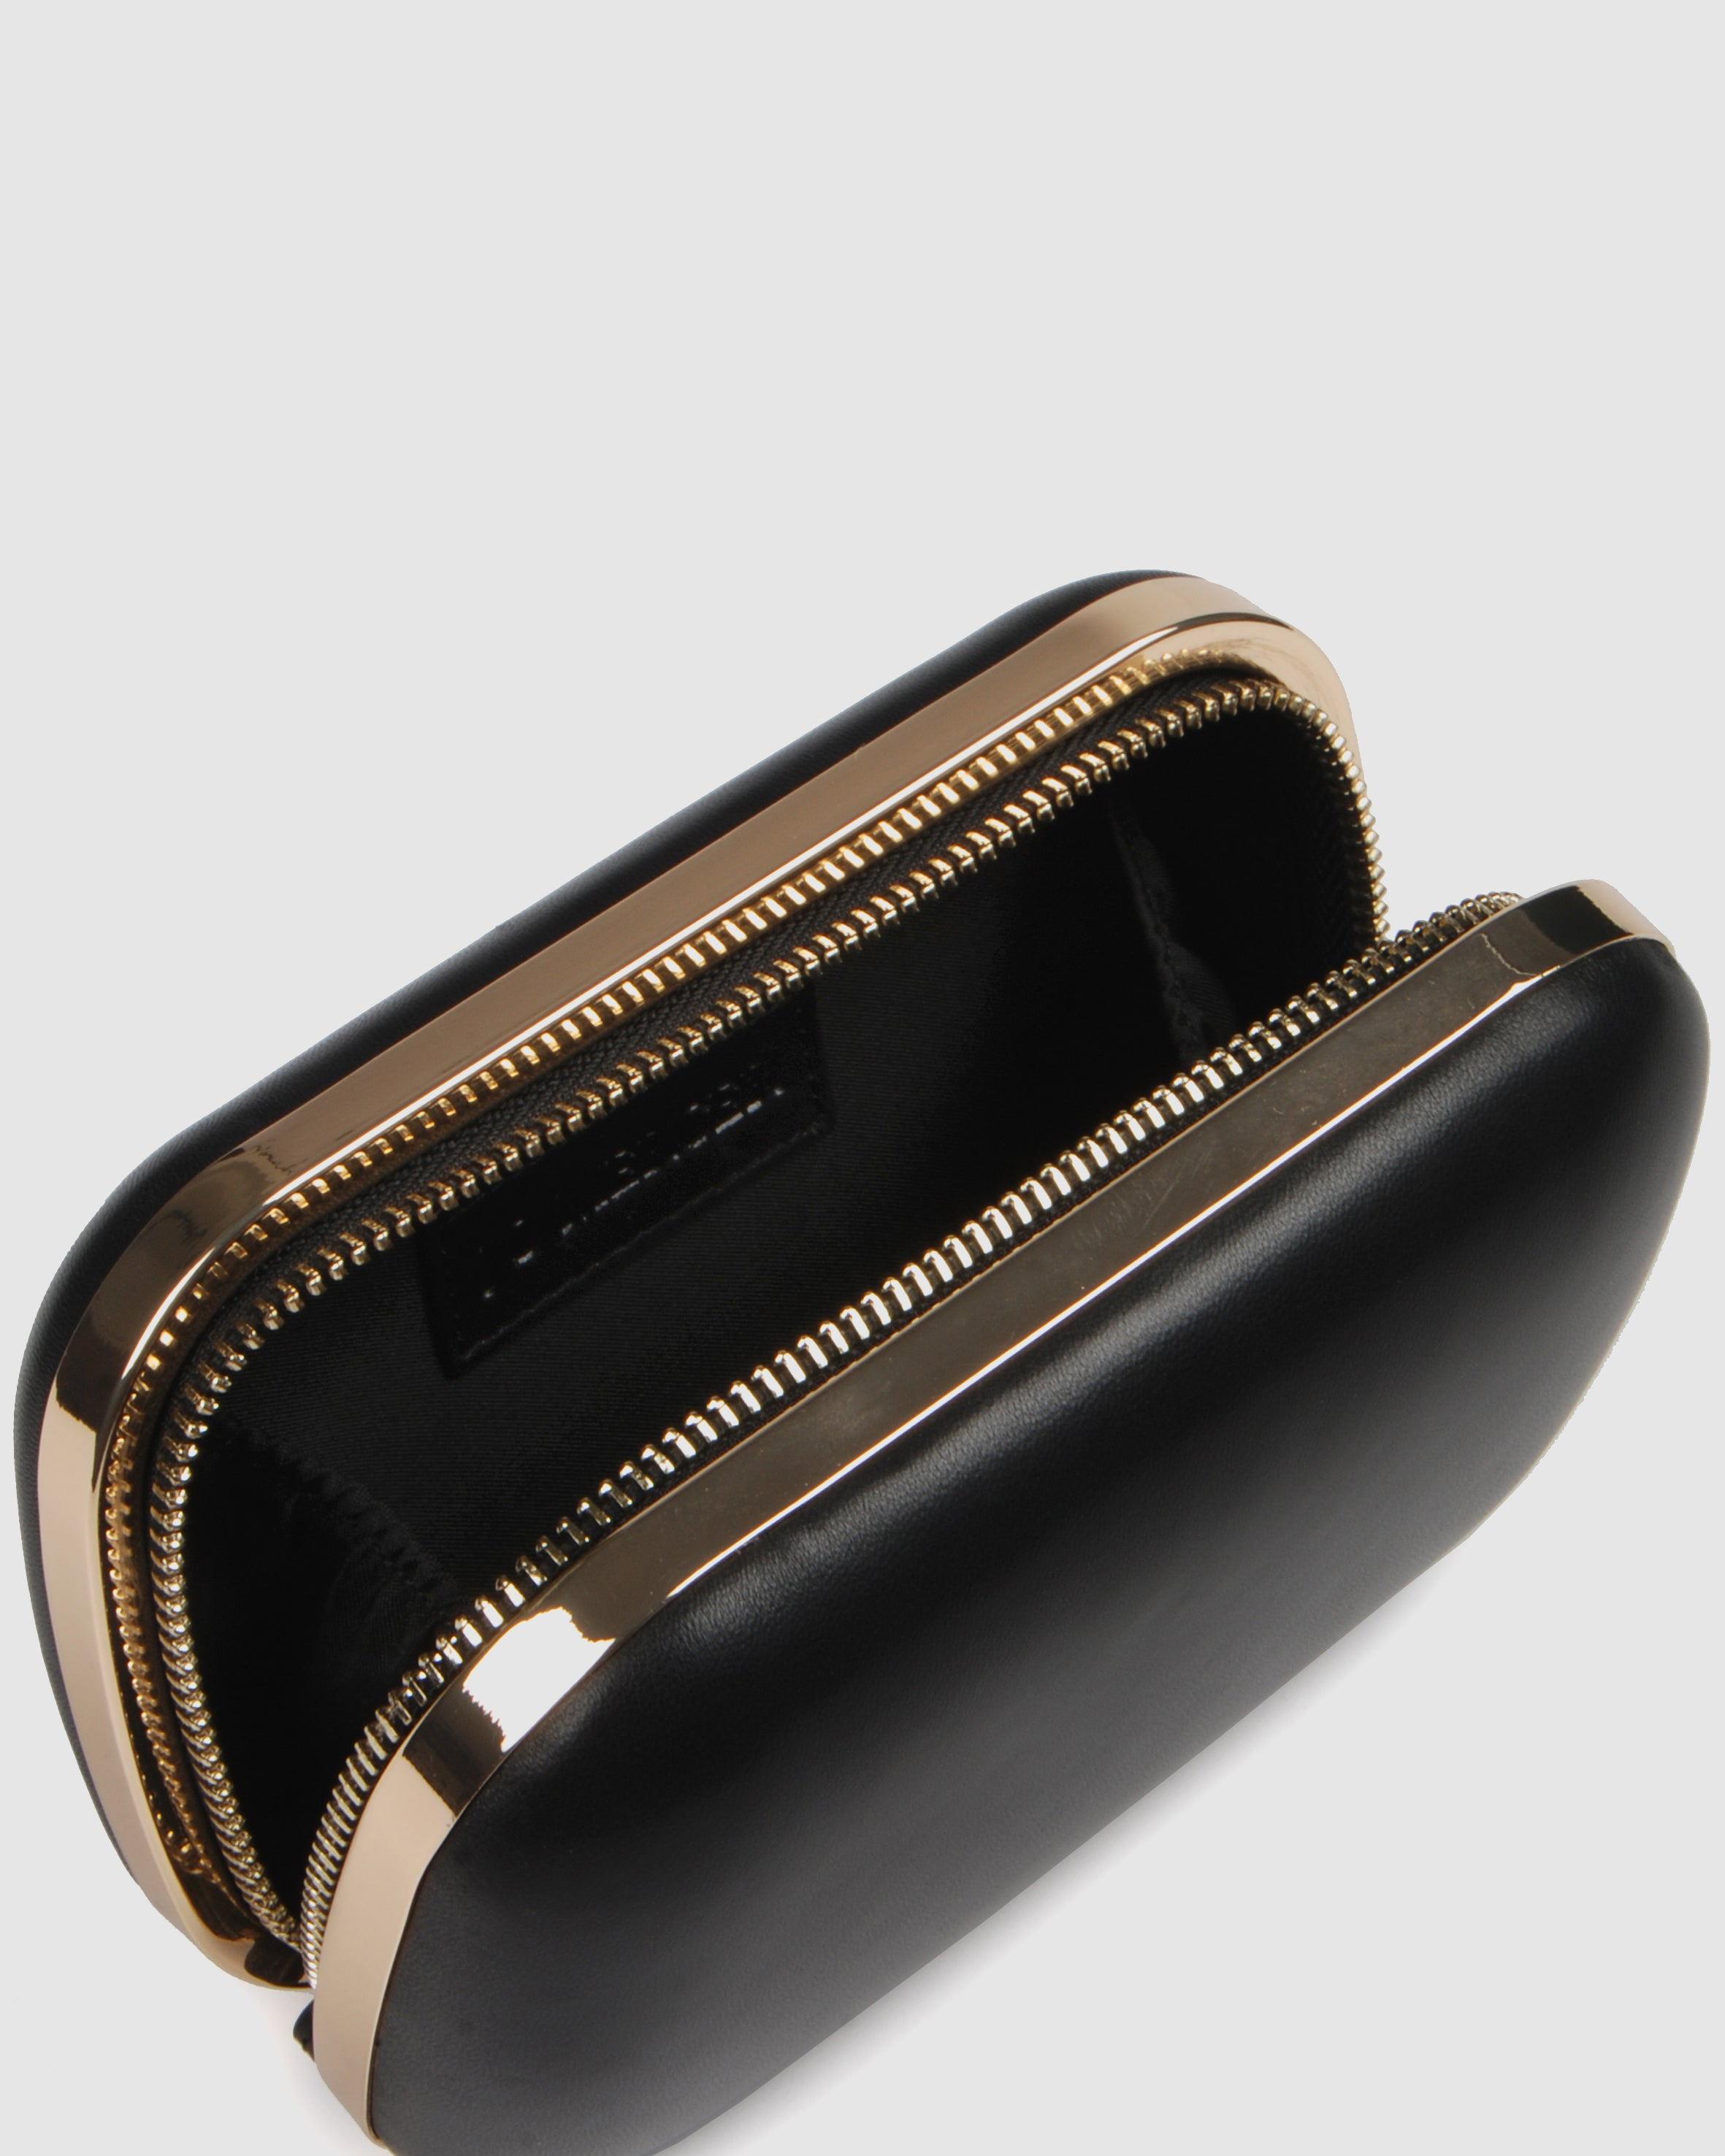 DAZZLE CLUTCH BLACK LEATHER